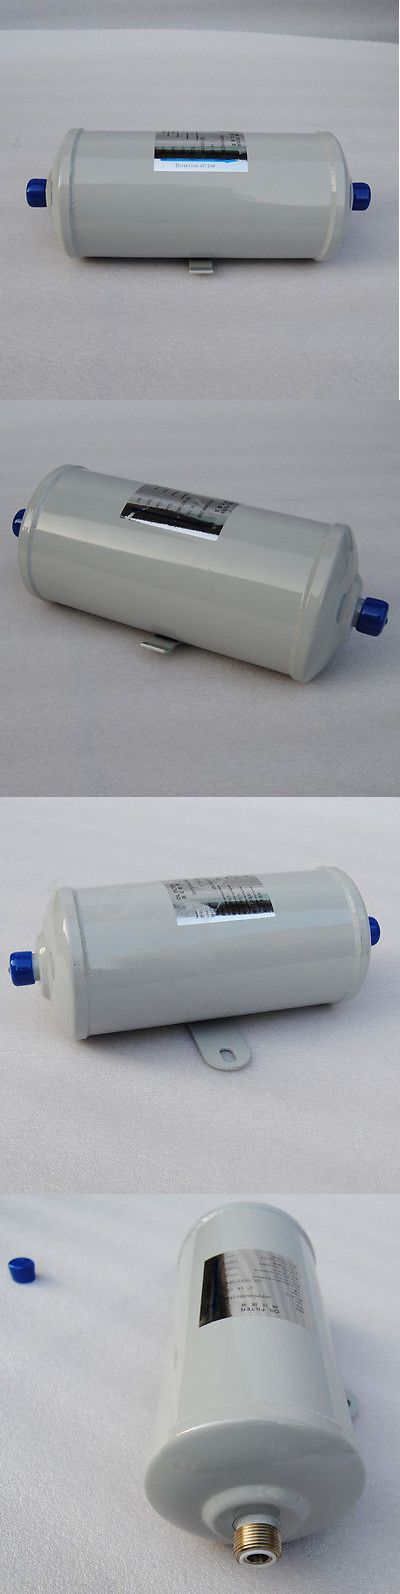 Electronics Parts: Replacement Carrier 30Xw ,30Hk,30Hrscrew Compressor Oil Filter 00Ppg000012800 BUY IT NOW ONLY: $99.0